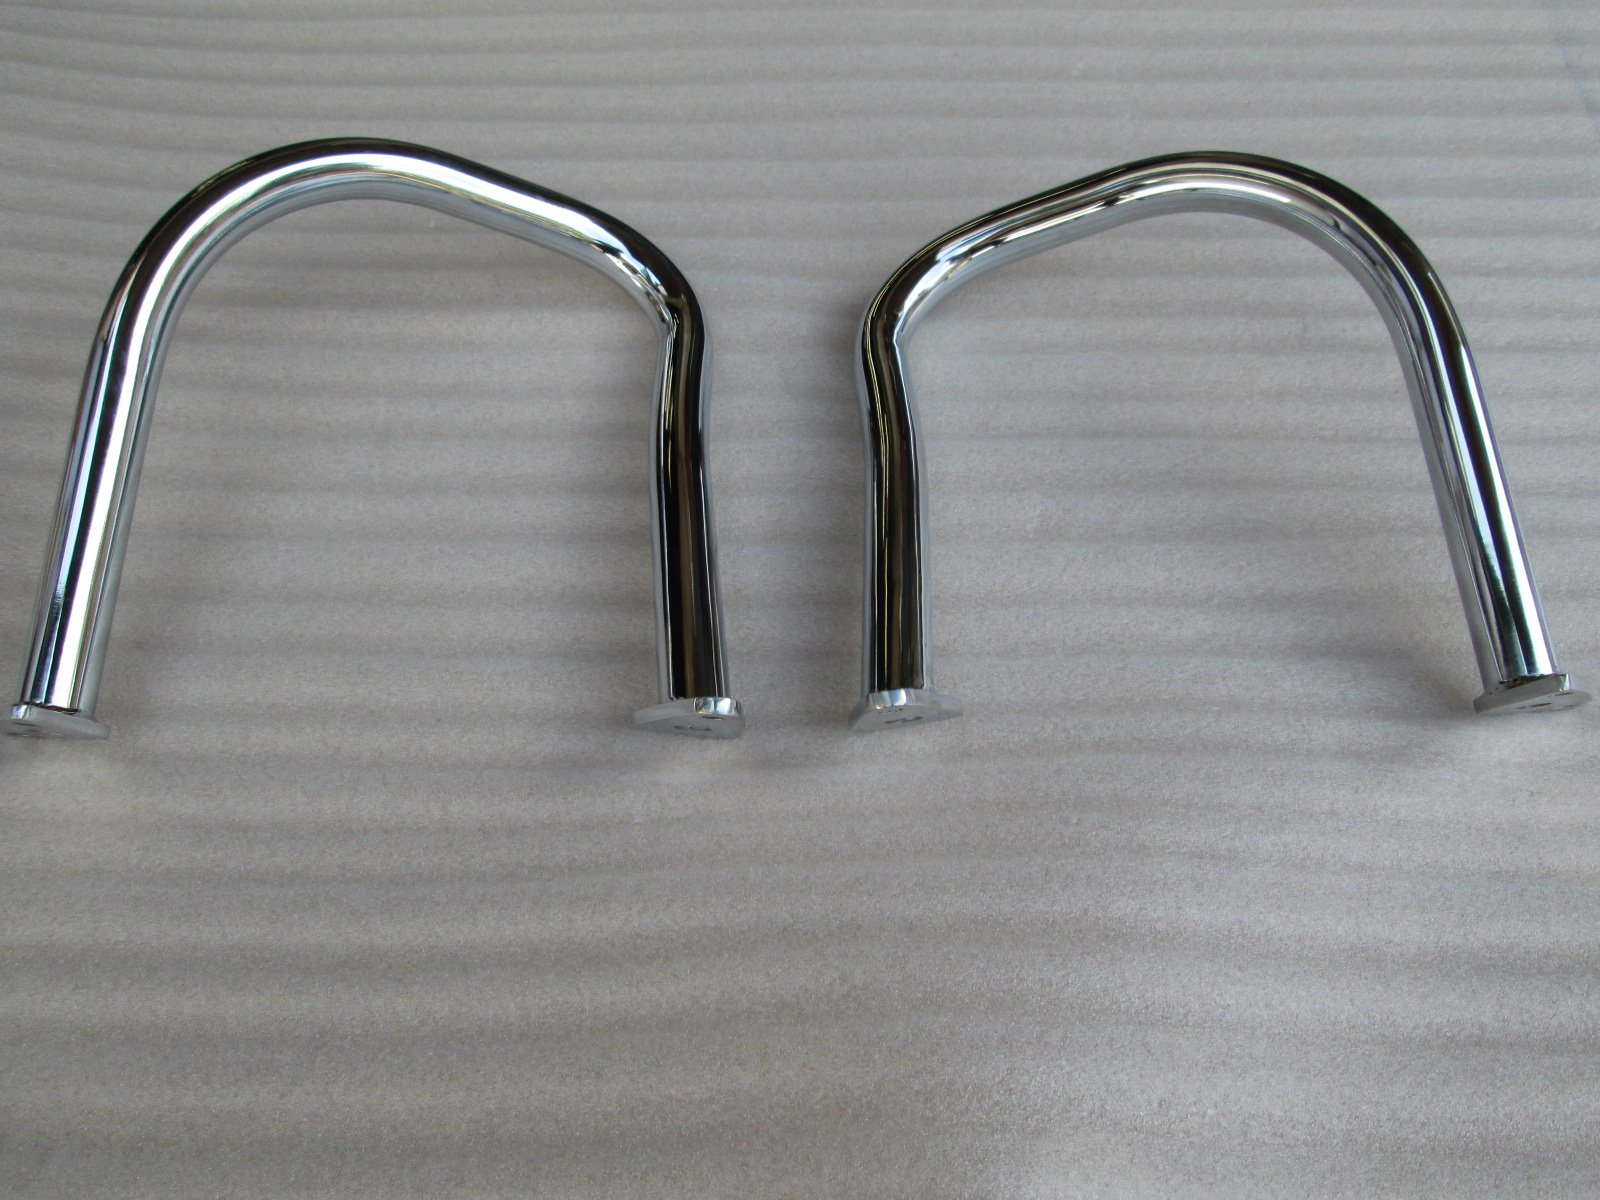 USA C30 NEW Indian Motorcycle's Rear Highway Bars Chrome Chief/Chieftain 2014 15